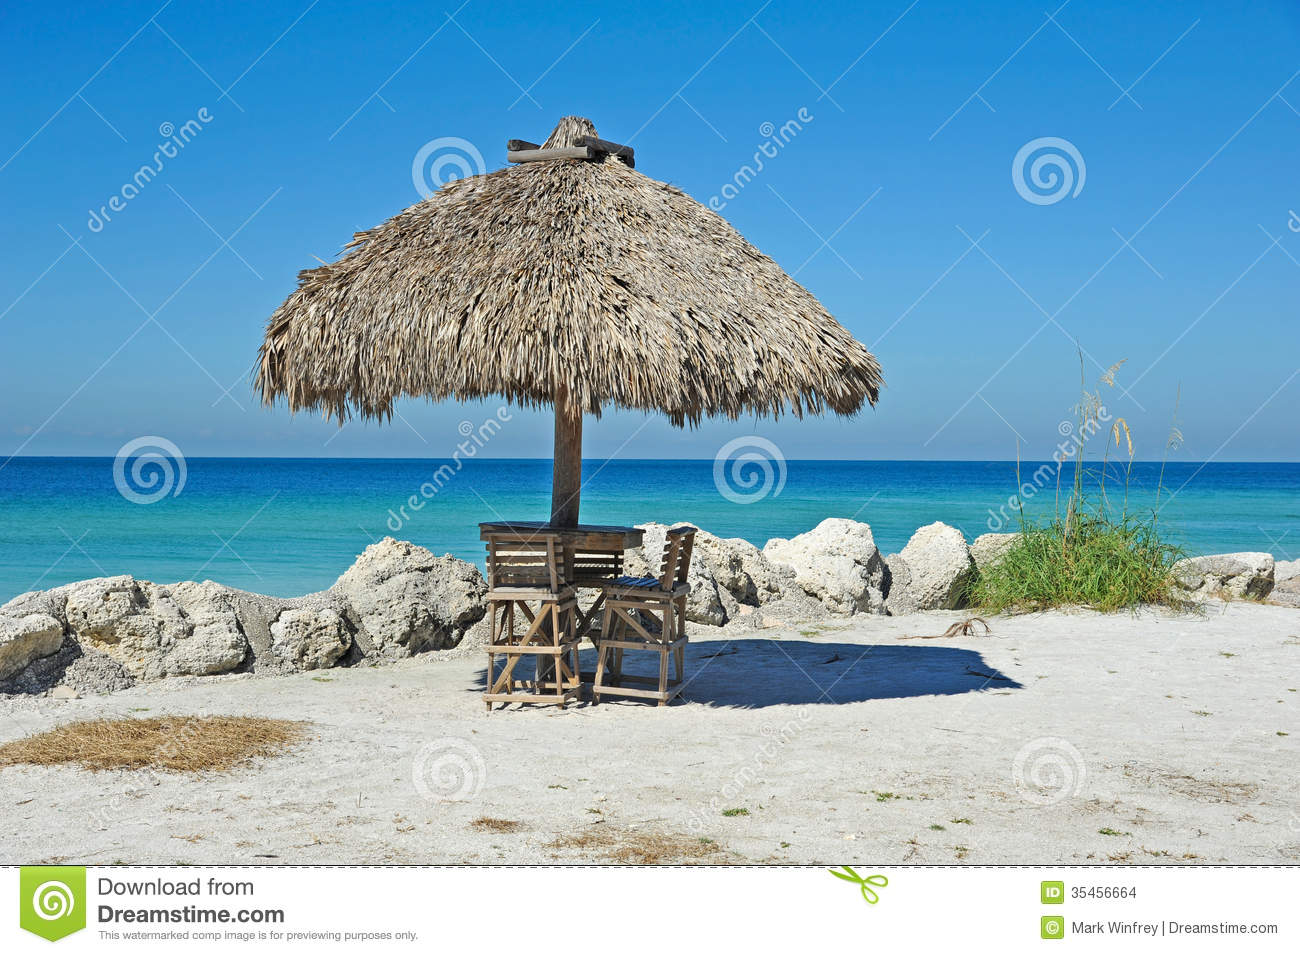 beach tiki hut bar stock images - Tiki Hut